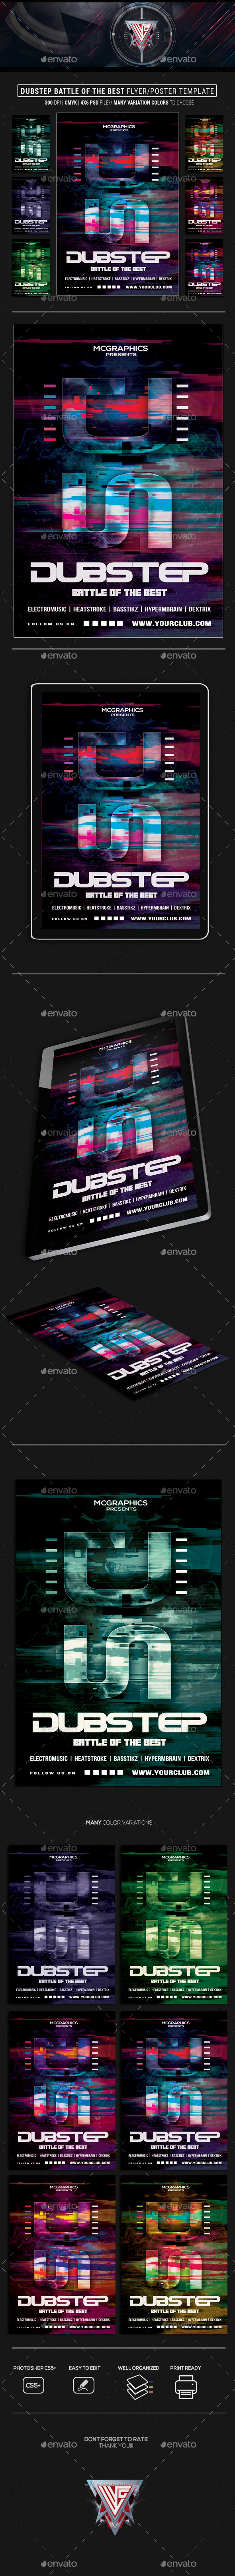 GraphicRiver Dubstep Best of the Best Flyer Poster Template 21156773